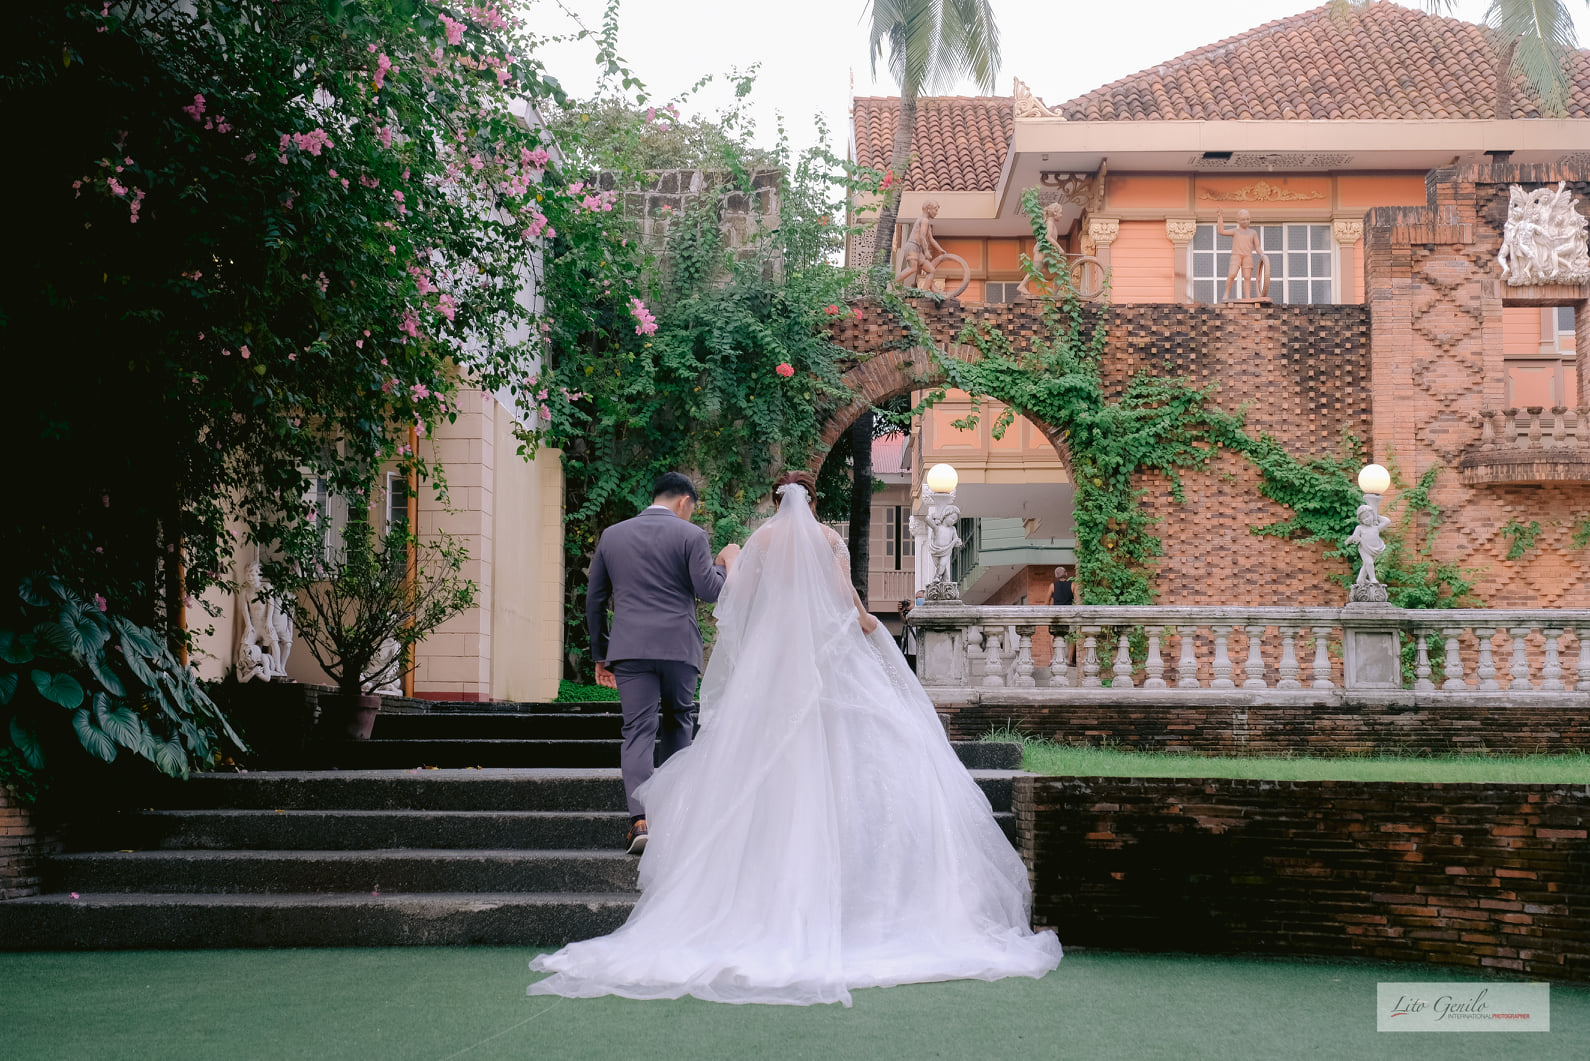 Jansen & Jean's Intimate Wedding. Captured by Smart Shot Studio.